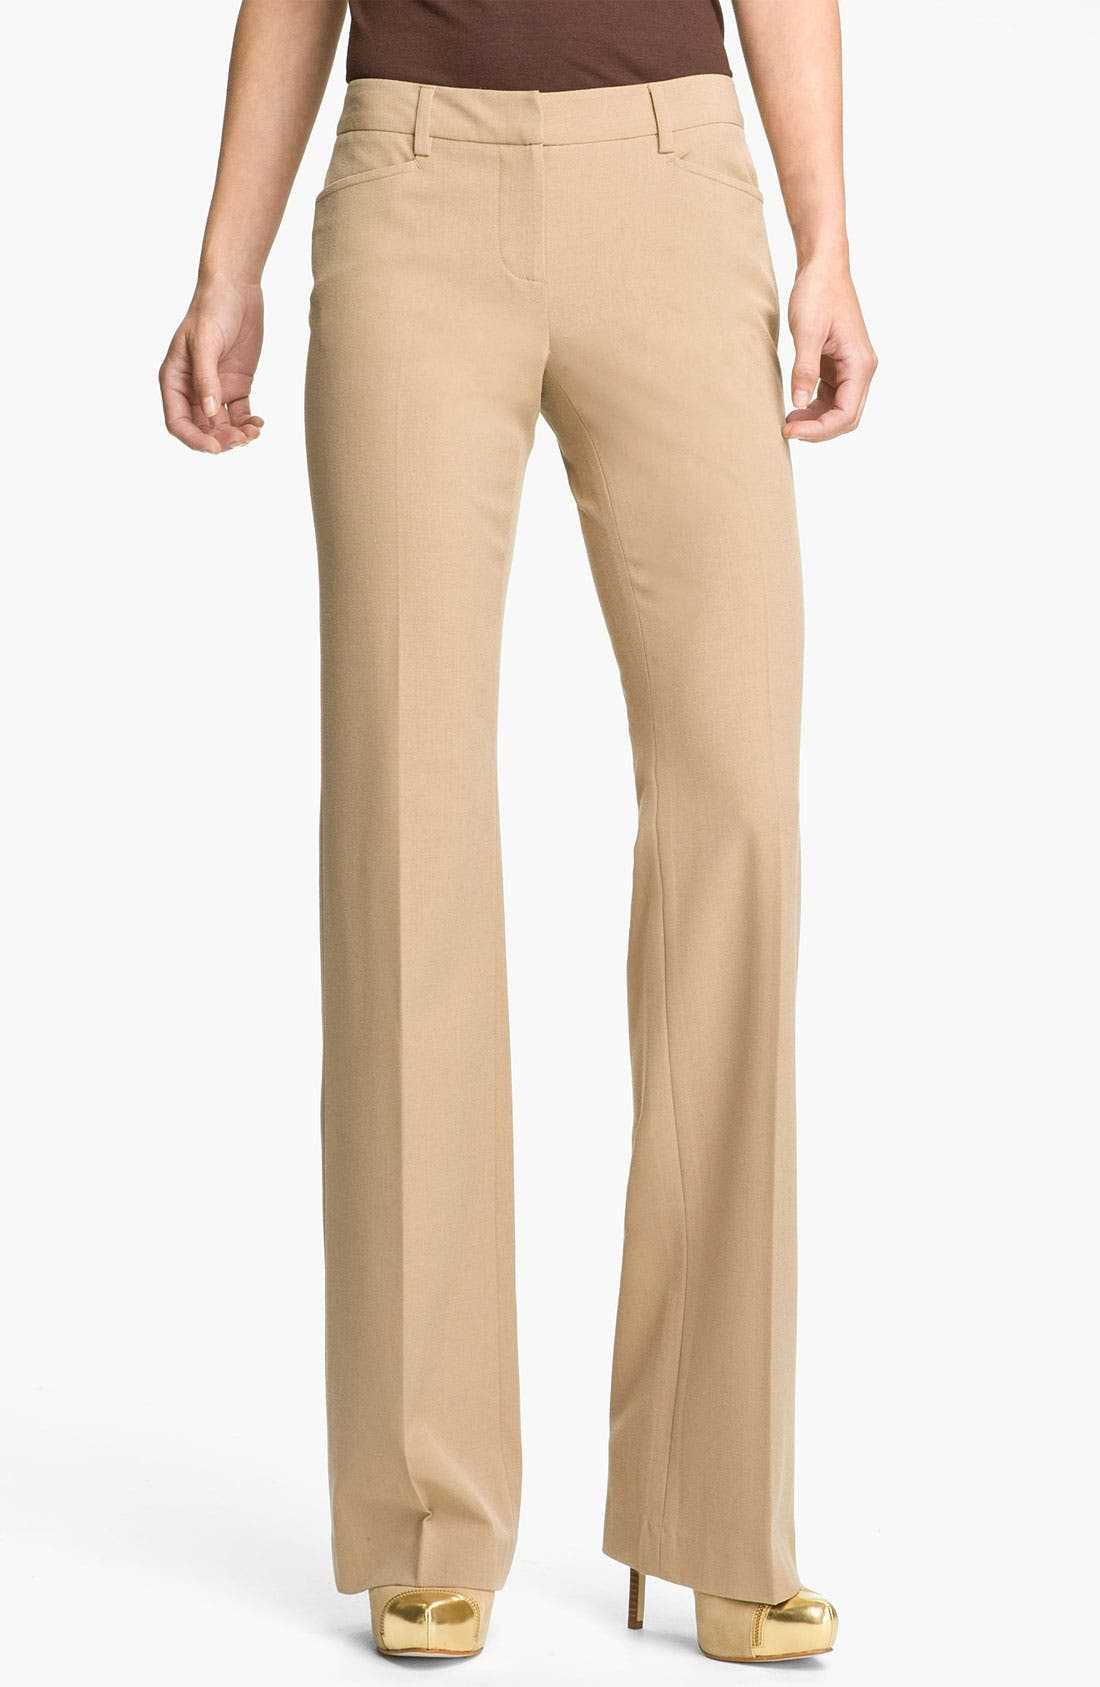 Alternate Image 1 Selected - MICHAEL Michael Kors 'Gramercy' Pants